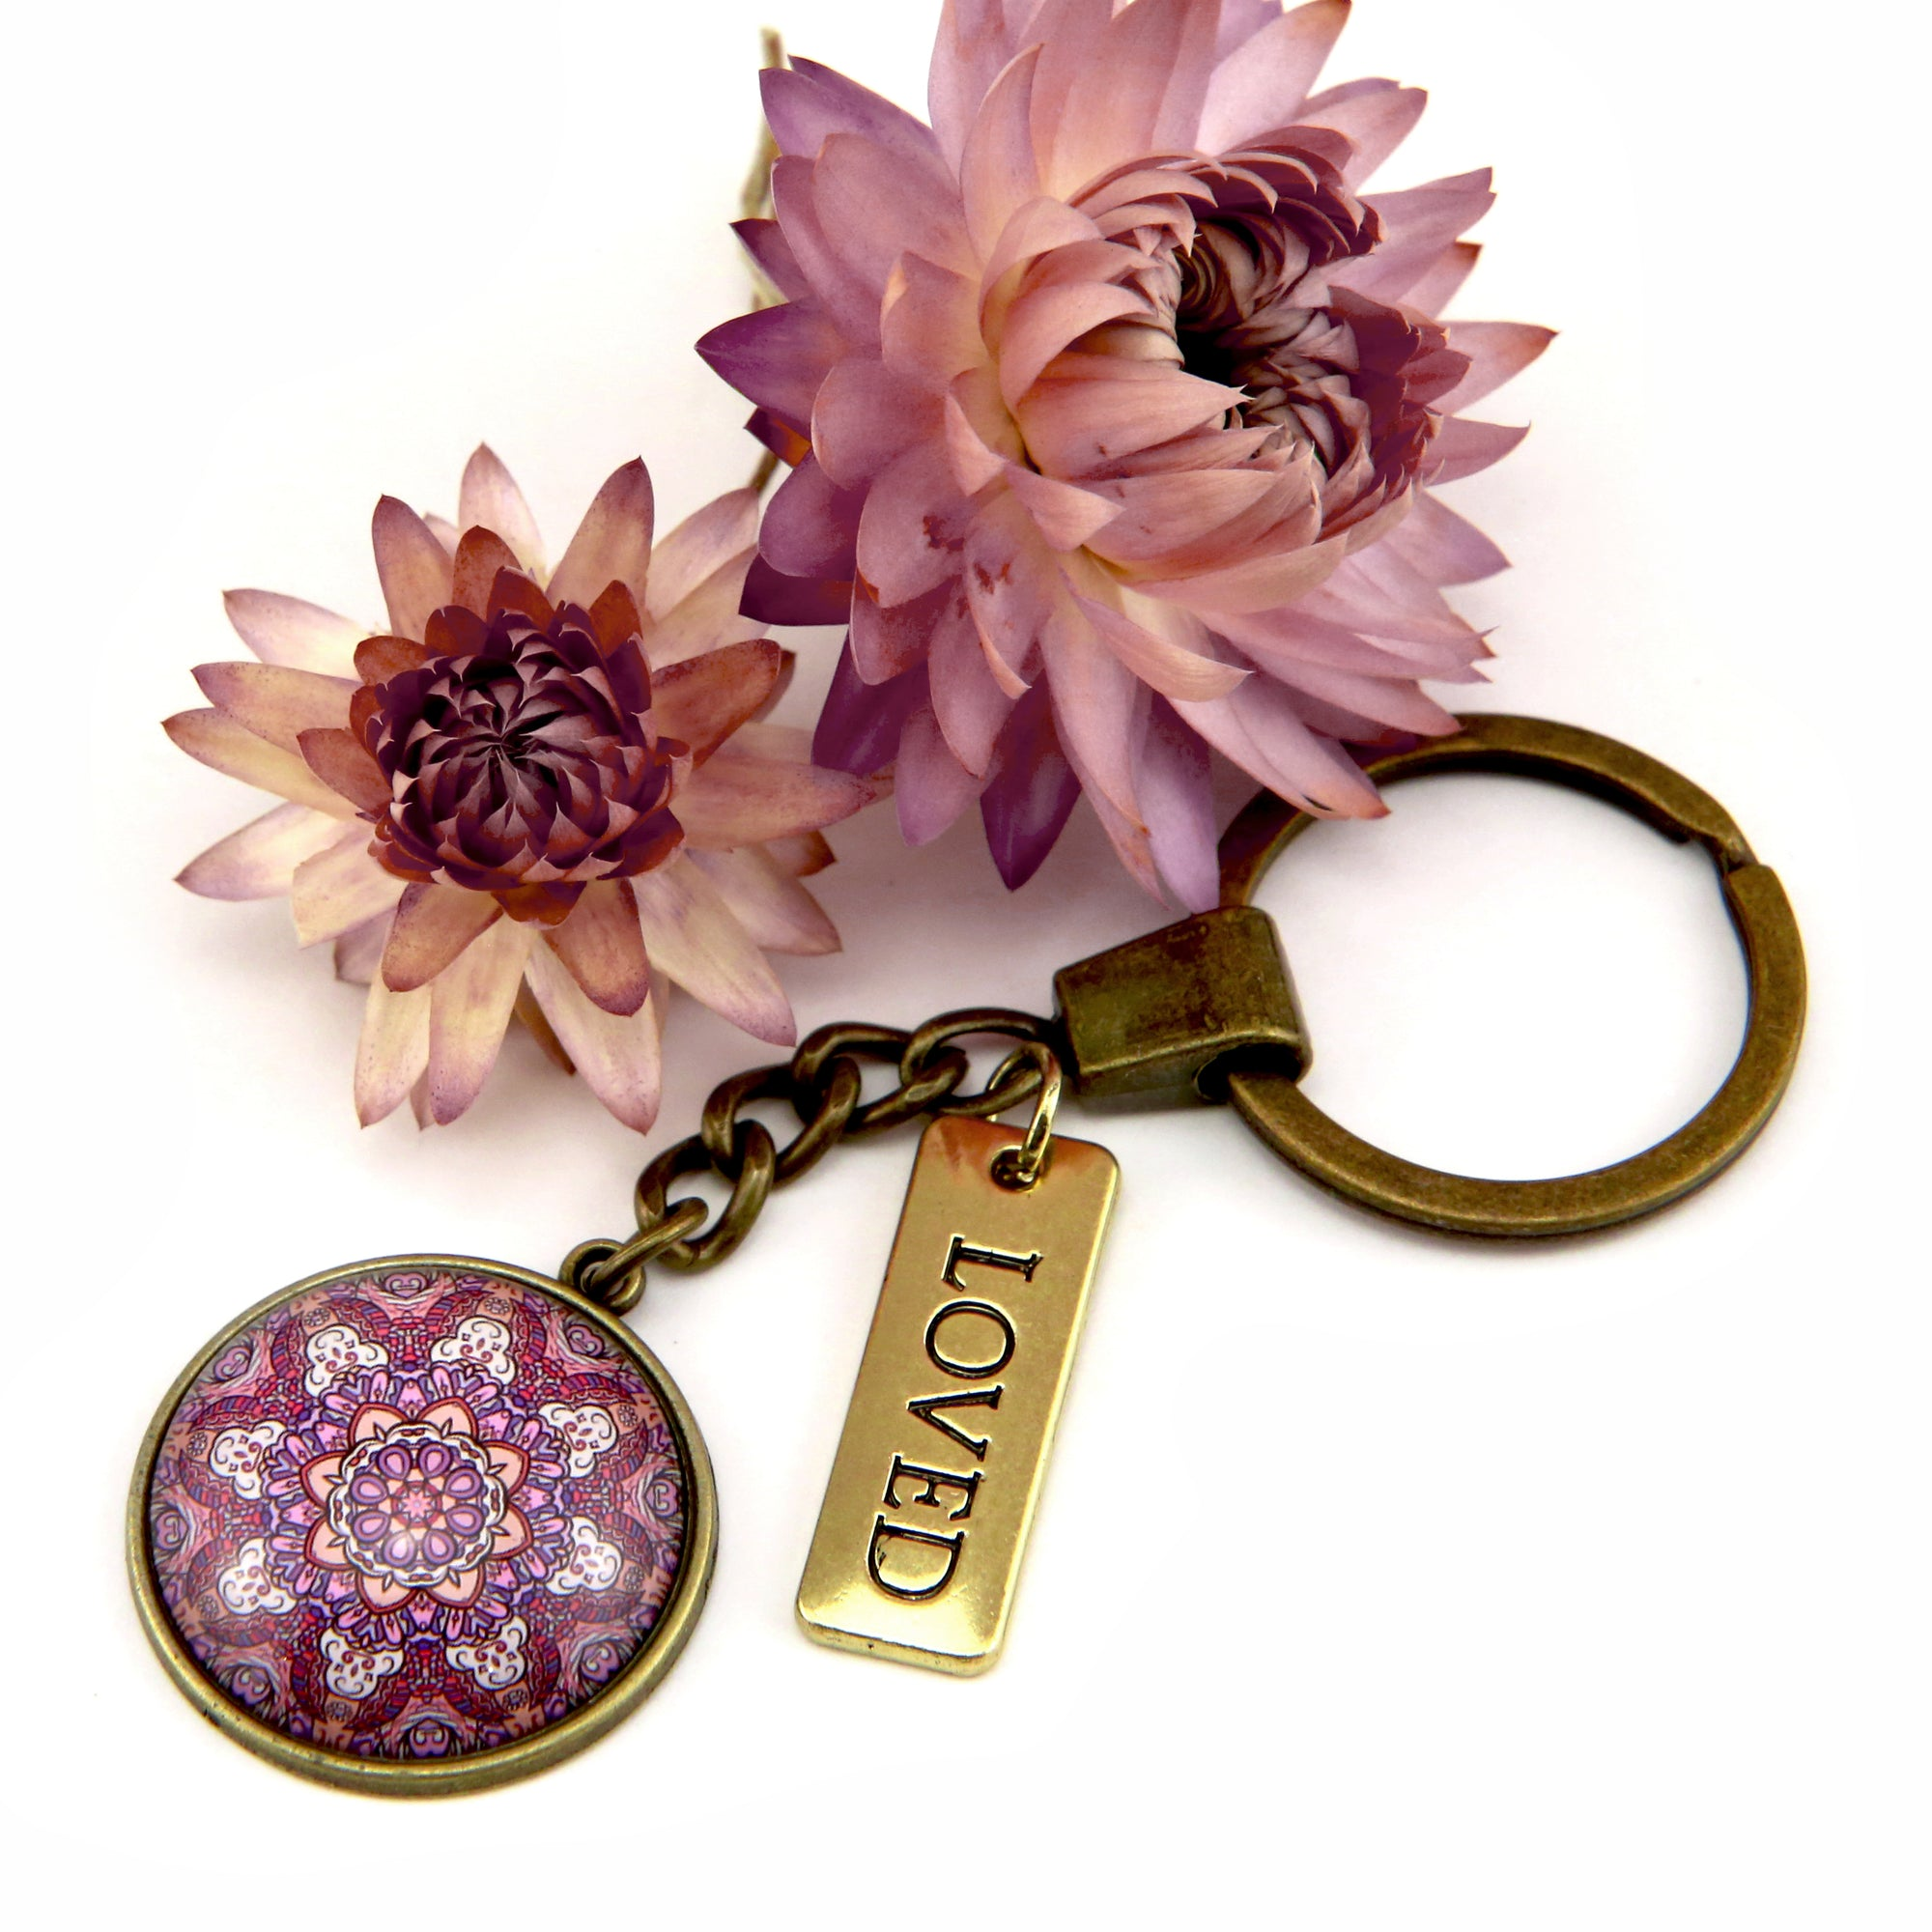 BOHO Collection - Vintage Gold Keyring with 'LOVED' Charm - Daybreak (10341-A)